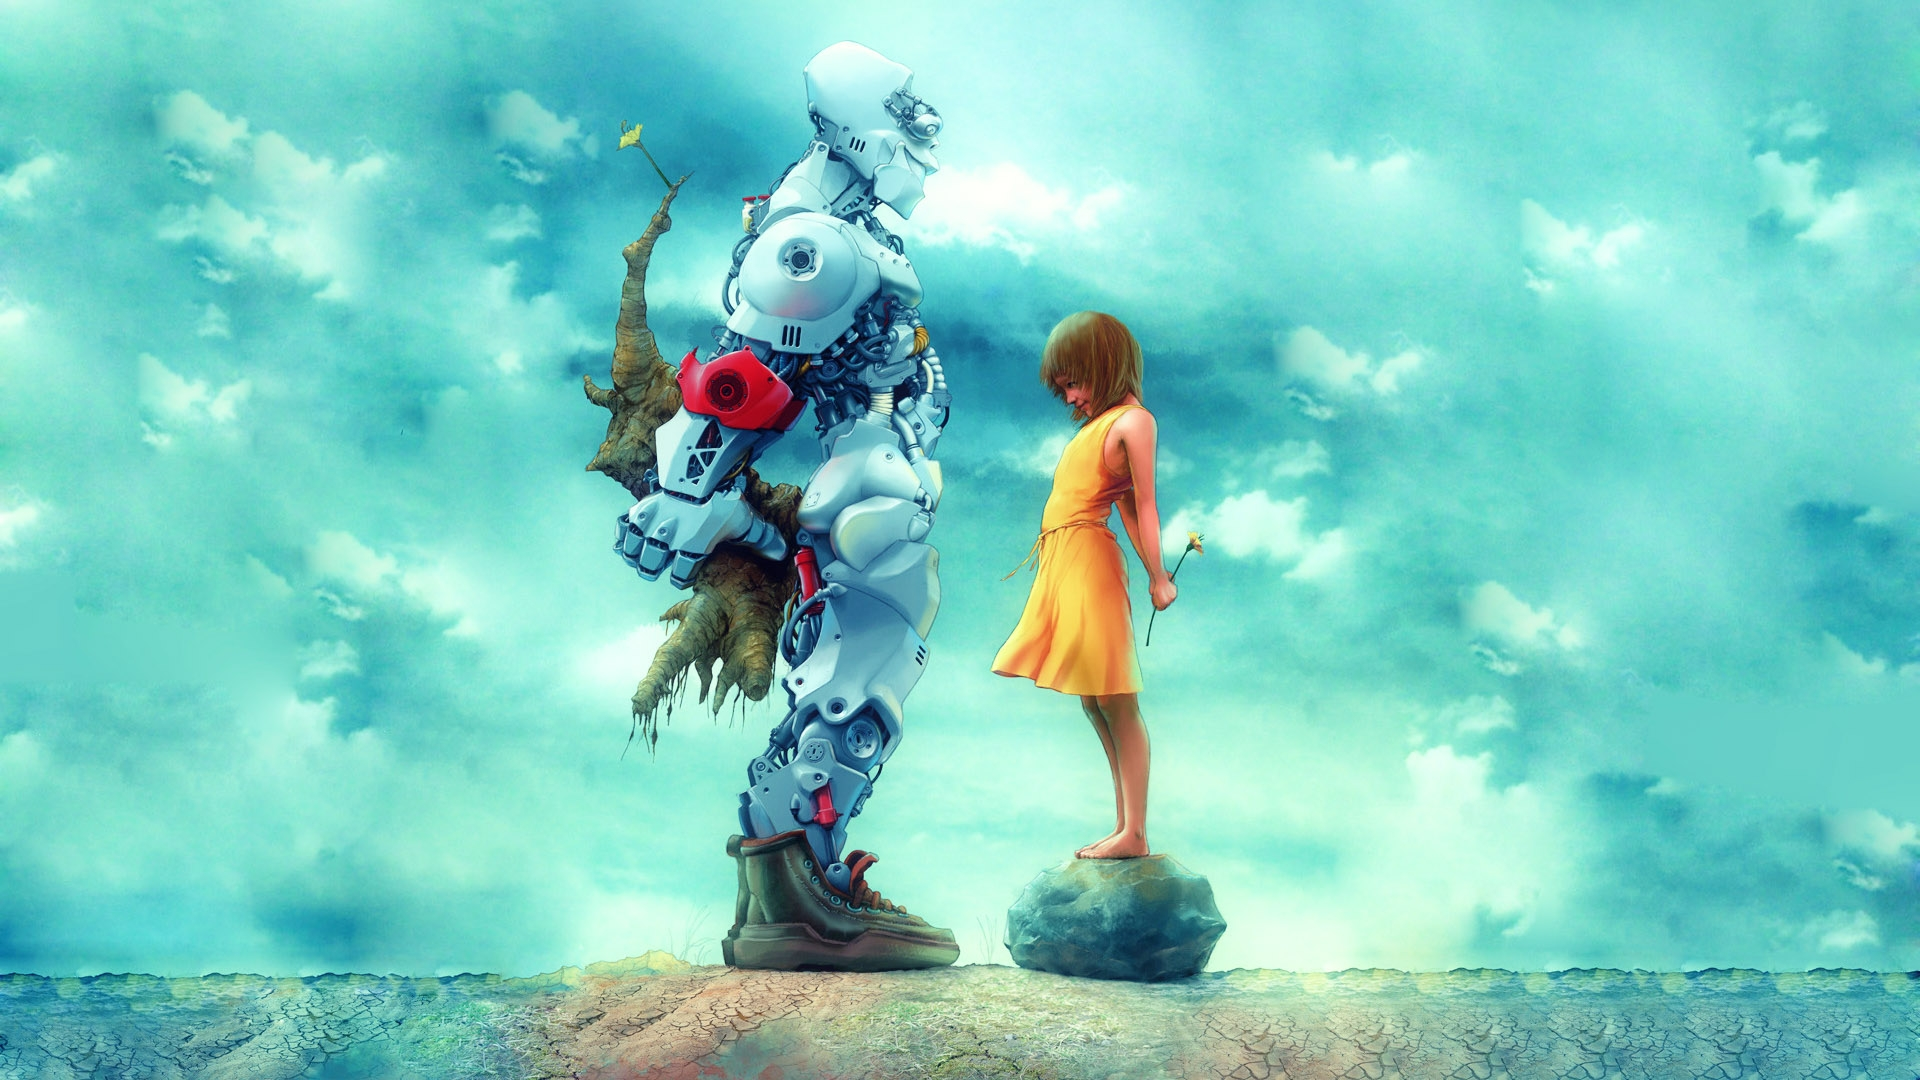 Cute Robot HD Wallpapers 15441   Amazing Wallpaperz 1920x1080